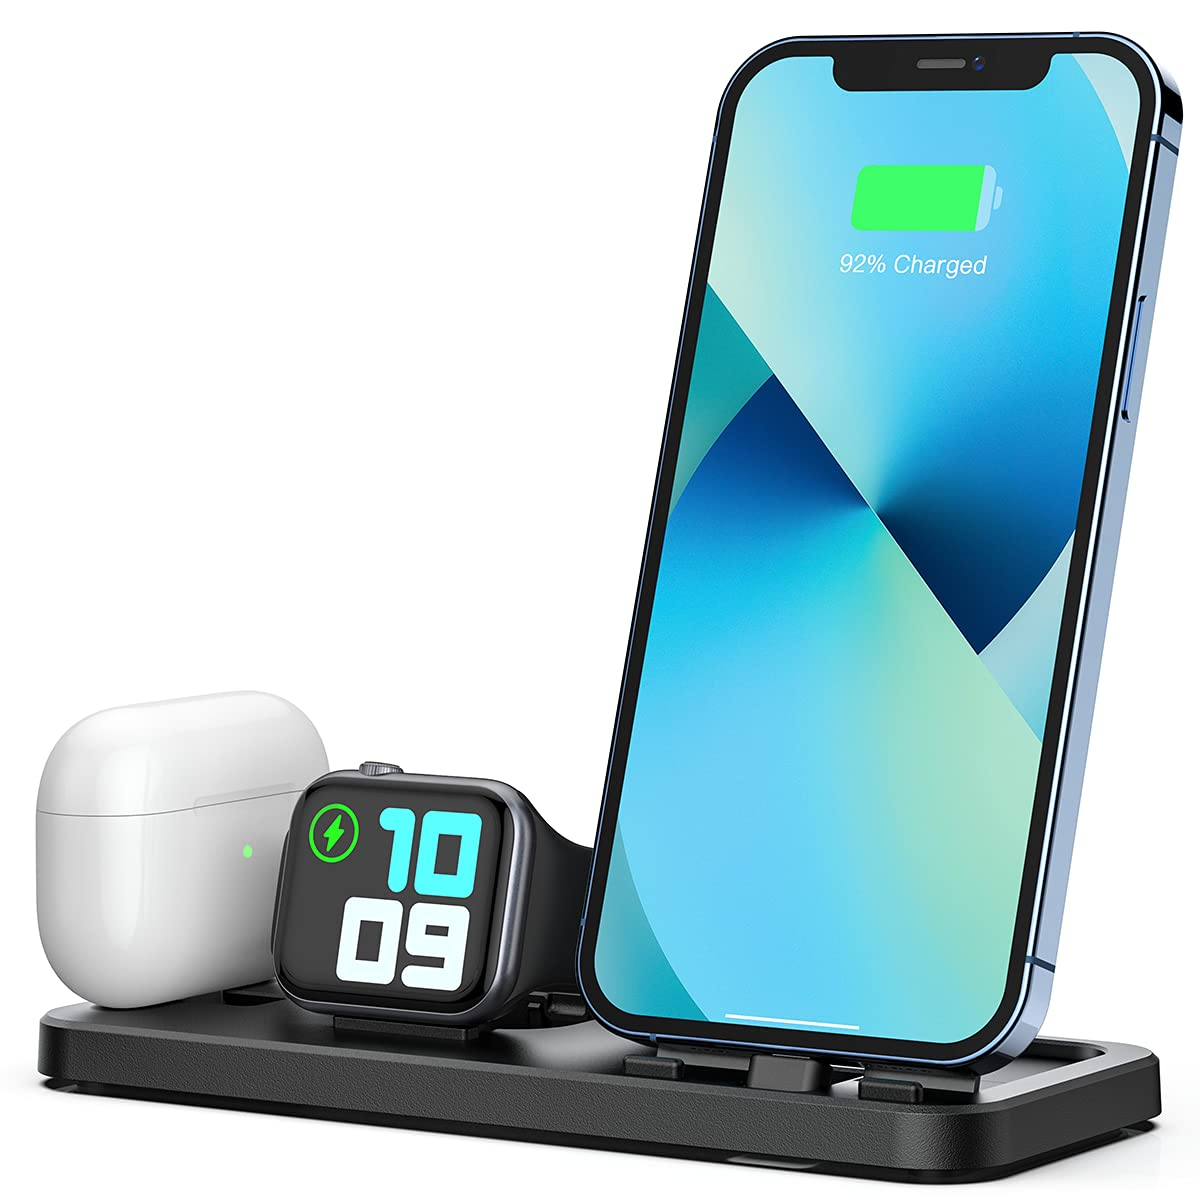 LERCIOR Portable 3 in 1 Charging Station for Apple Devices Foldable Charger Station for Apple Watch 6/SE/5/4/3/2/1 Charger Stand, Charging Dock Station for iPhone AirPods Pro 2/1 Charging Stand Black